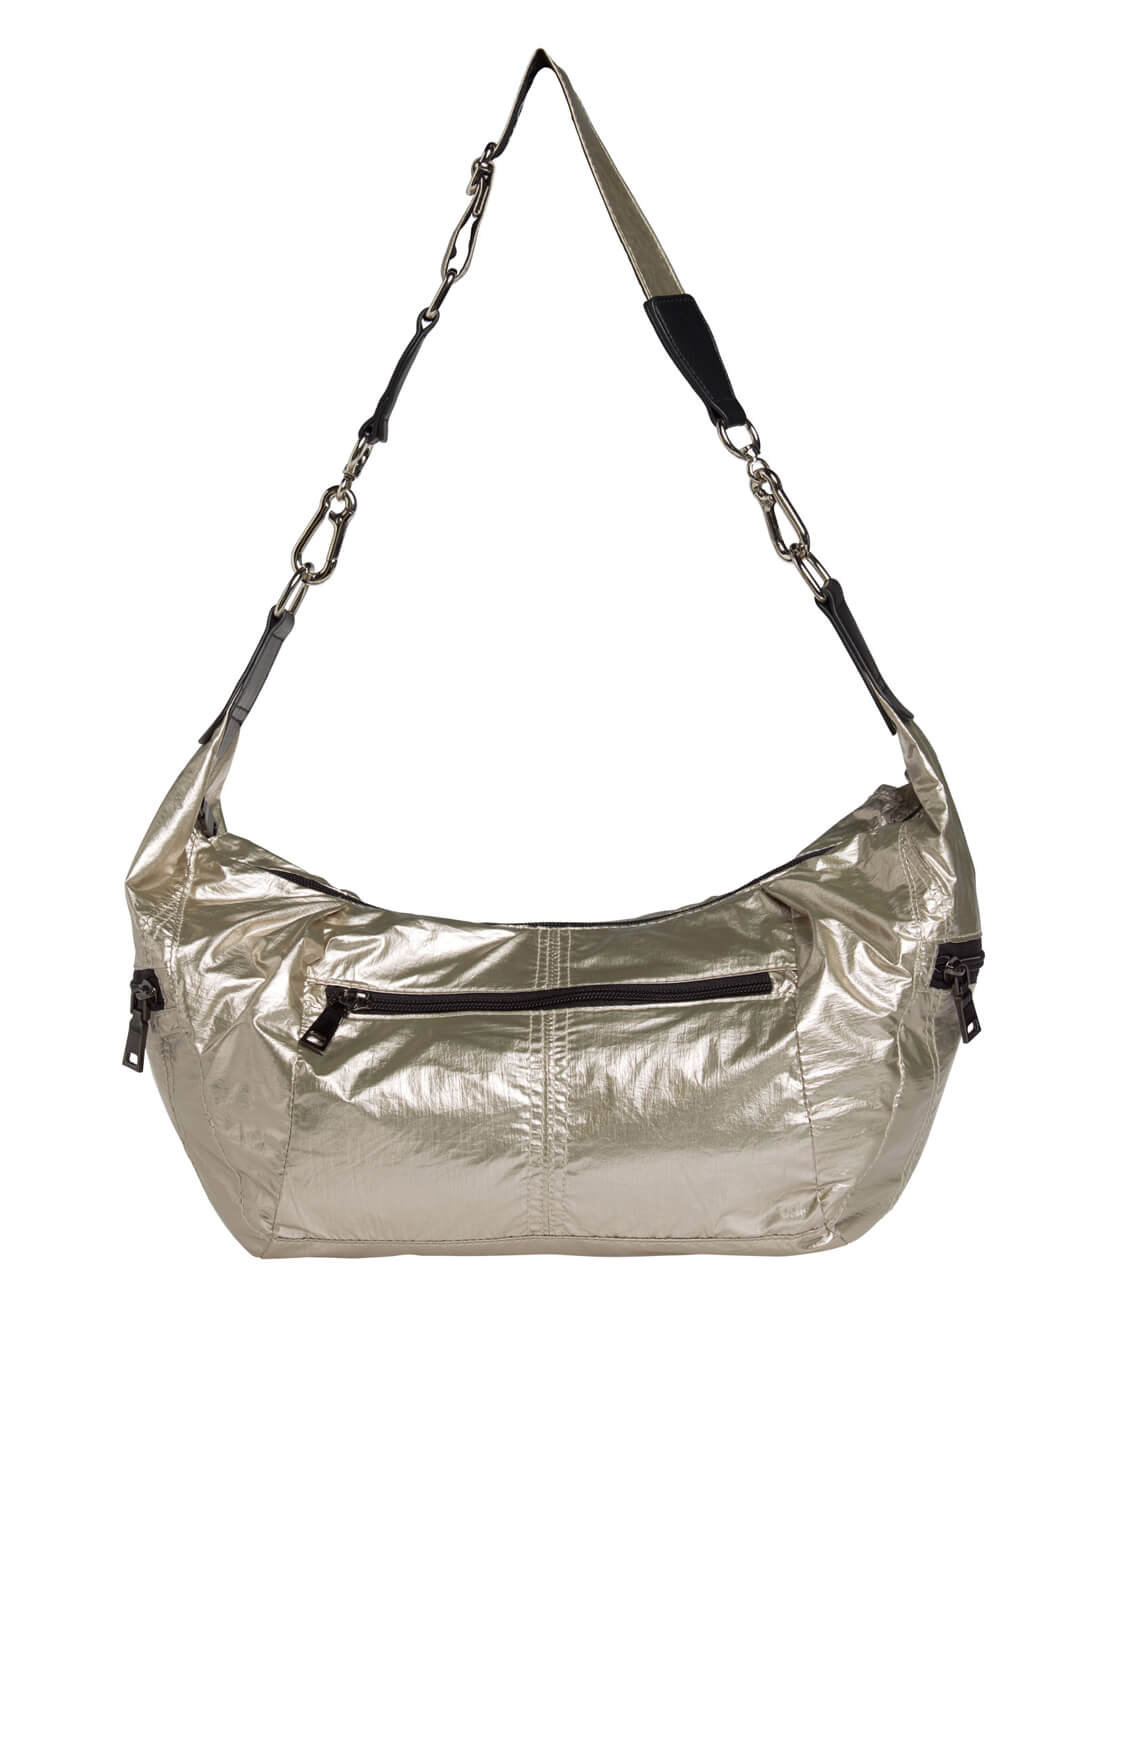 10 Days Dames Metallic tas goud